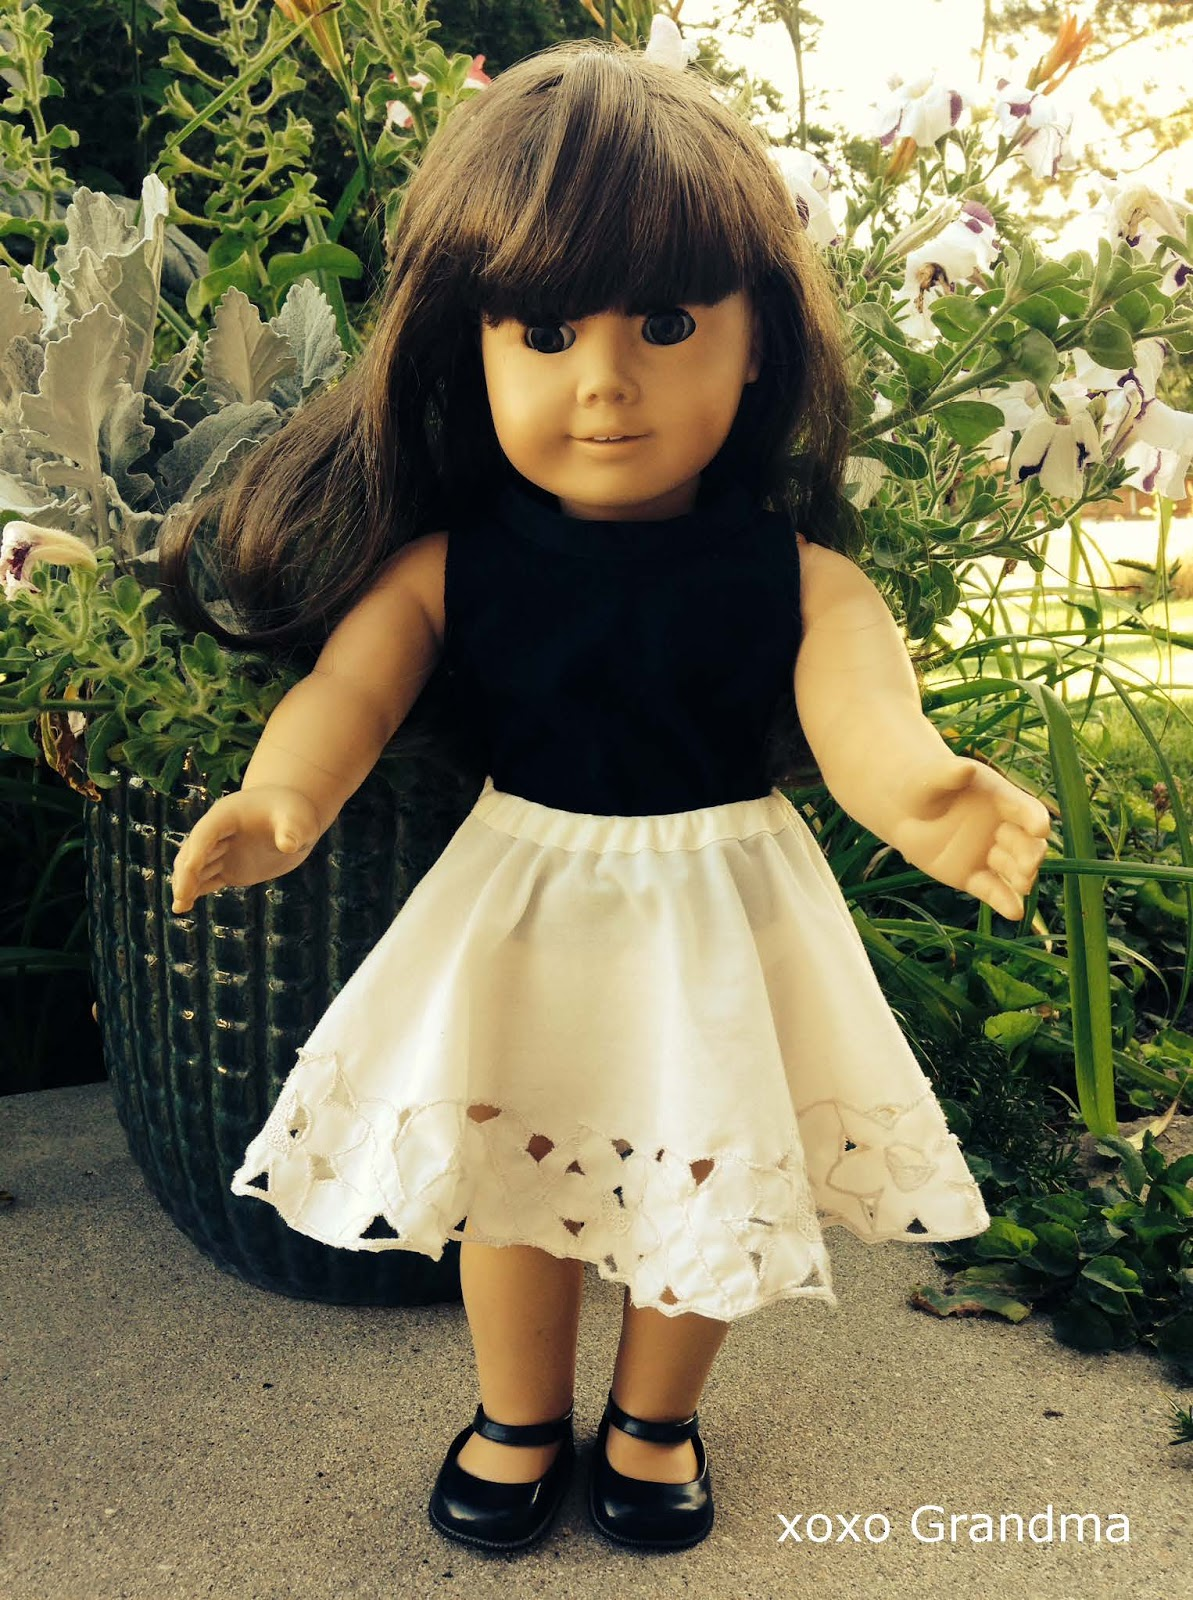 Xoxo Grandma Doll Skirt From A Lace Doily A Tutorial